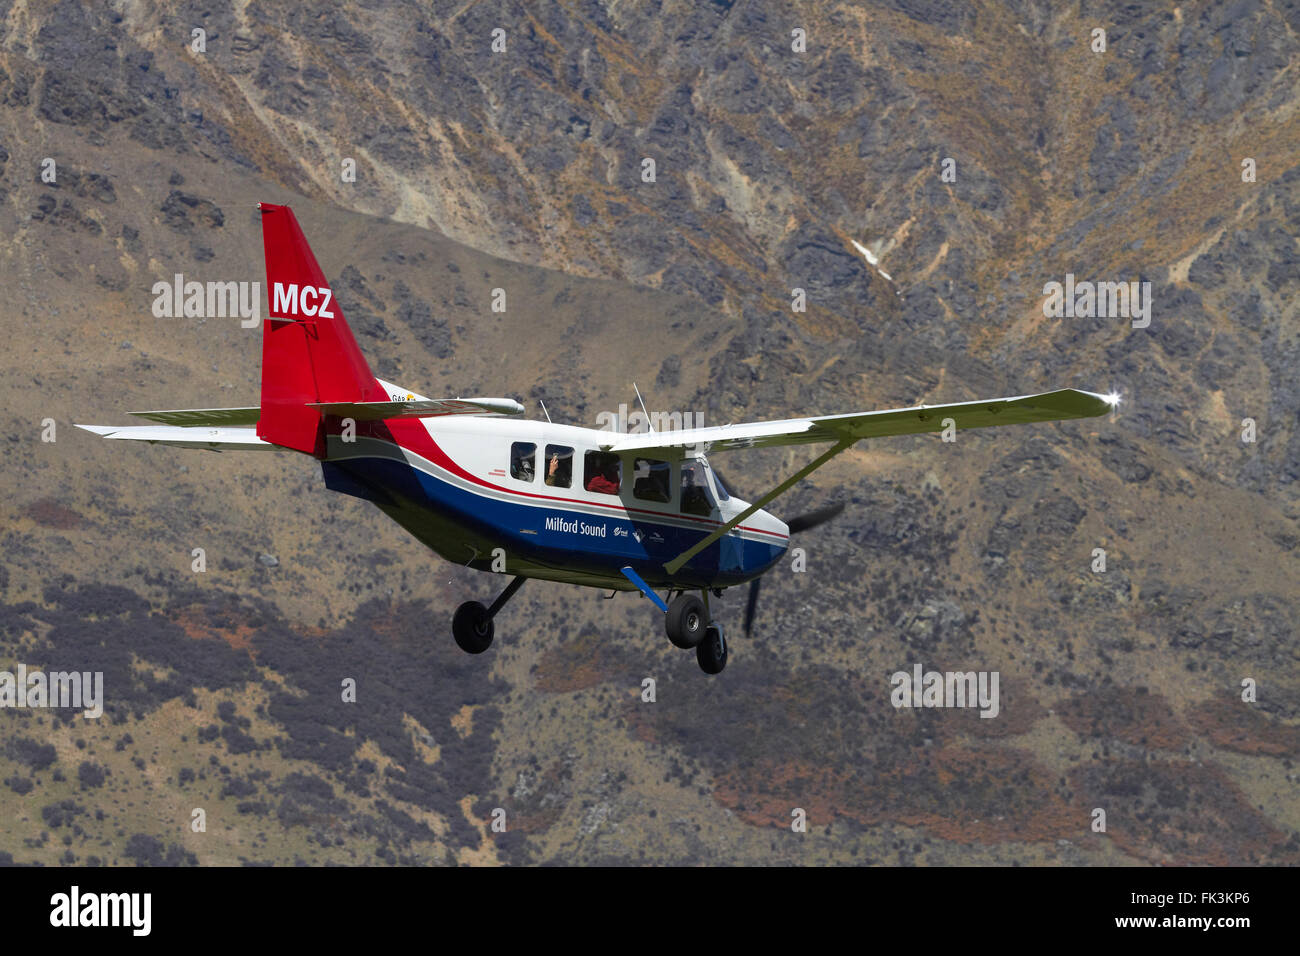 Milford Sound Flights Gippsland GA8 plane landing at Queenstown Airport, Otago, South Island, New Zealand - Stock Image